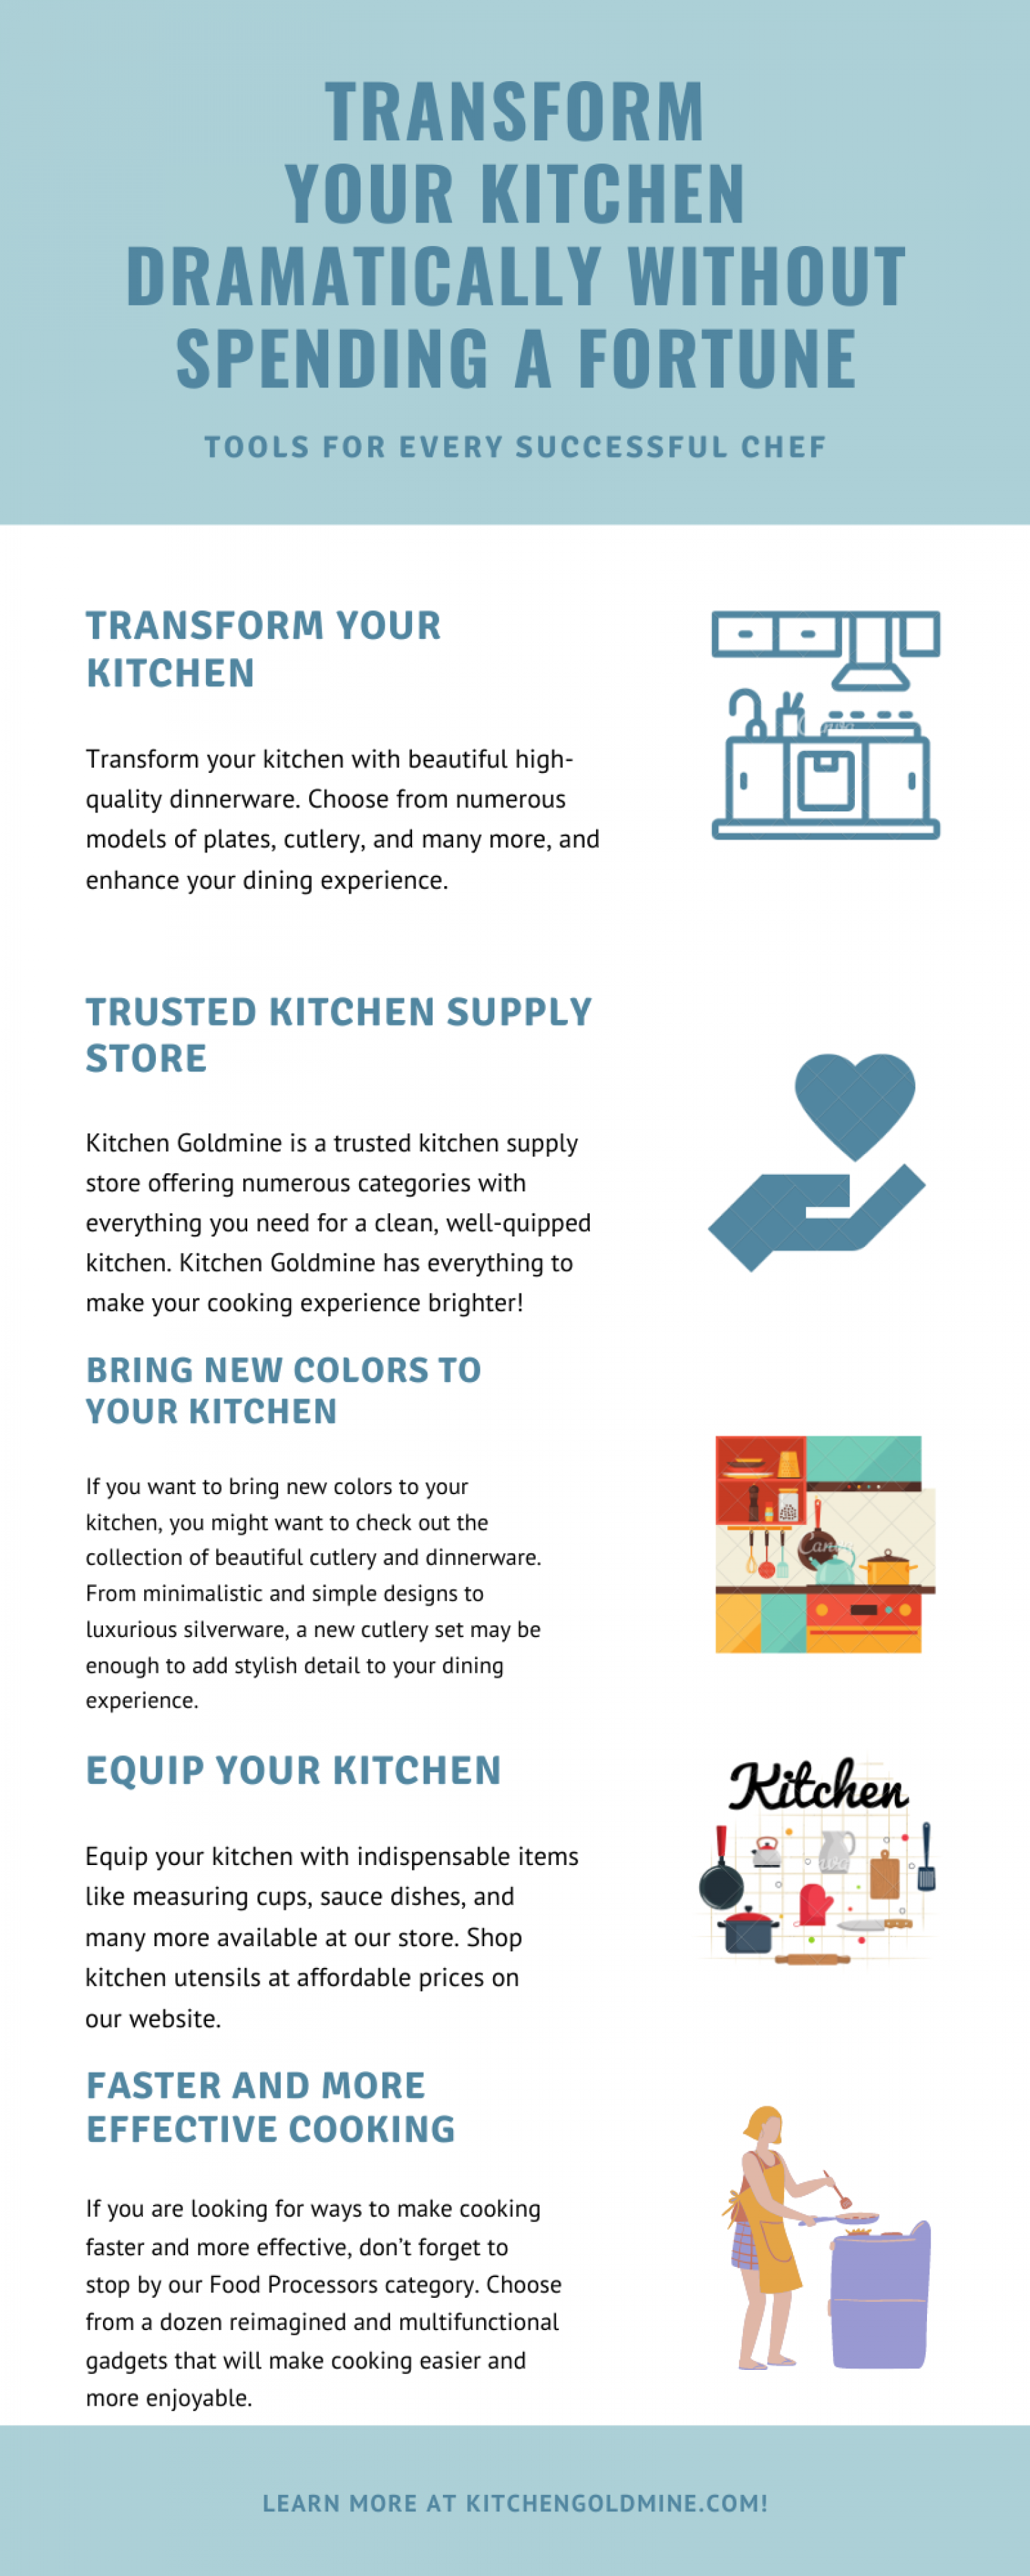 Transform Your Kitchen Dramatically Without Spending a Fortune Infographic